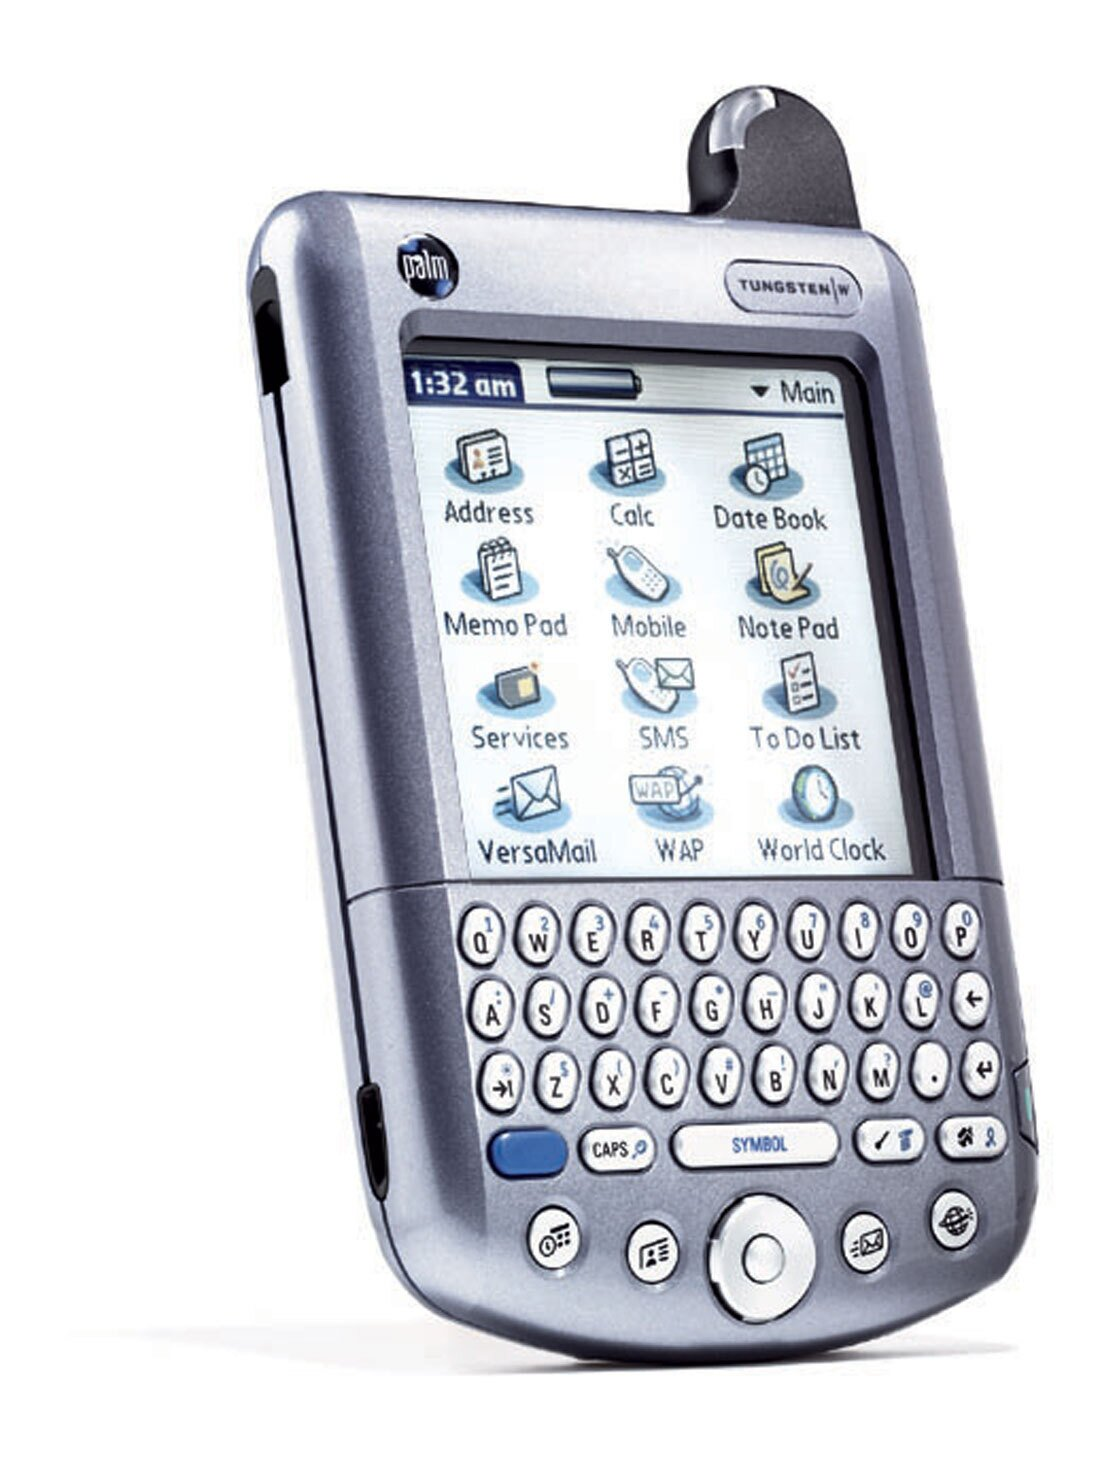 Built-in keyboard and five-way navigator button, stylus, and high-res color display. Organizer, headset phone, wireless Web and email capability. Operates with Palm OS 4.1.1. 6.5 ounces, 5.4 x 3.1 x .7 inches. Starts at $419.  Photo 6 of 6 in Inspecting Gadgets